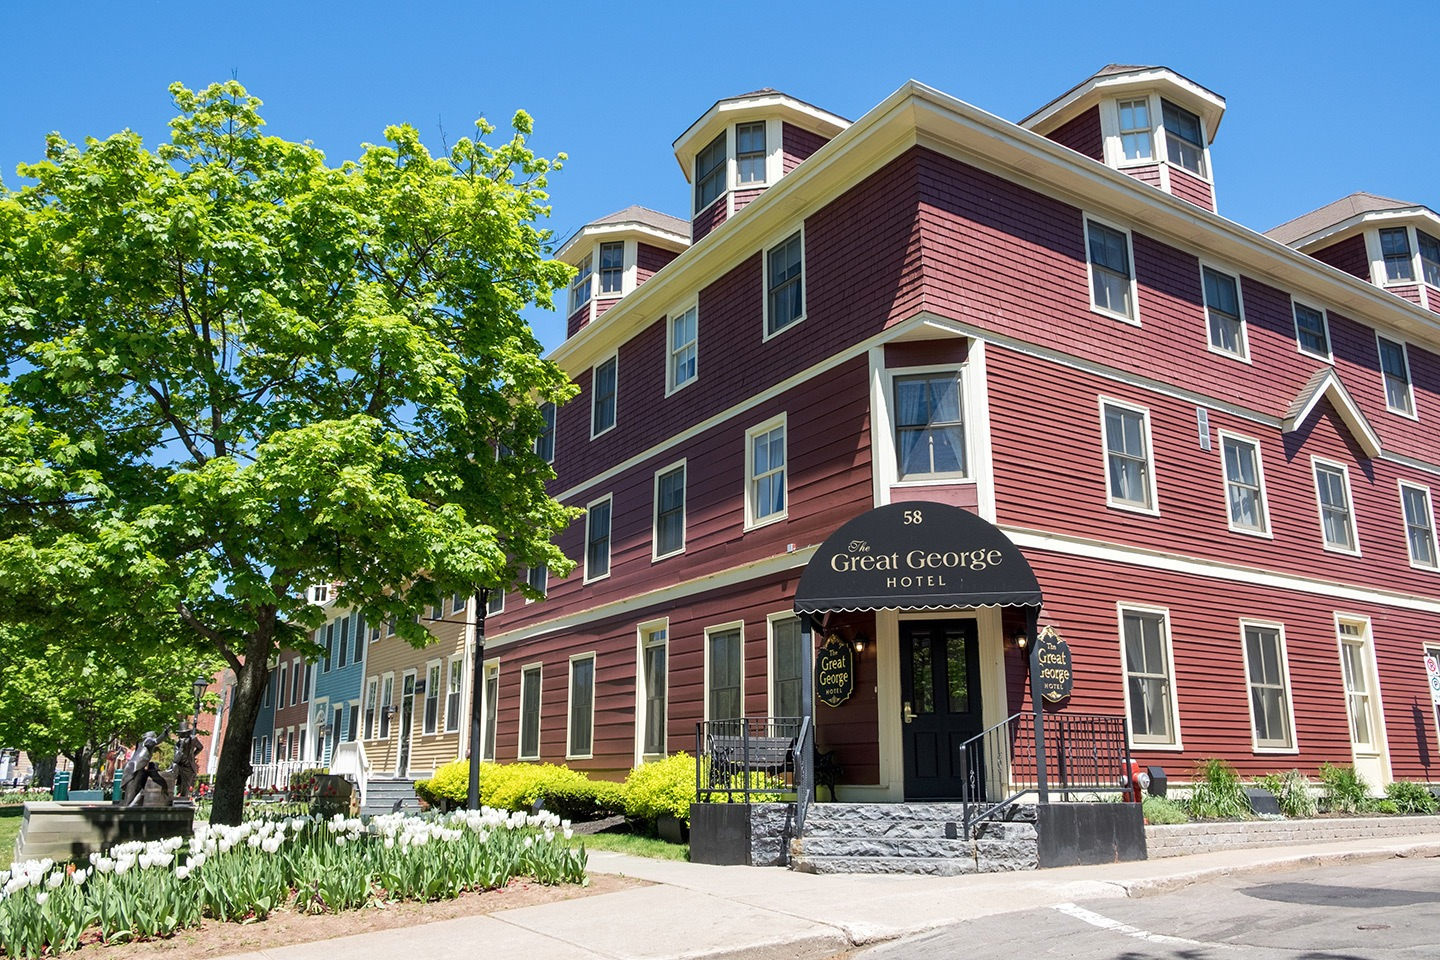 Great George Hotel in Charlottetown, Prince Edward Island, Canada